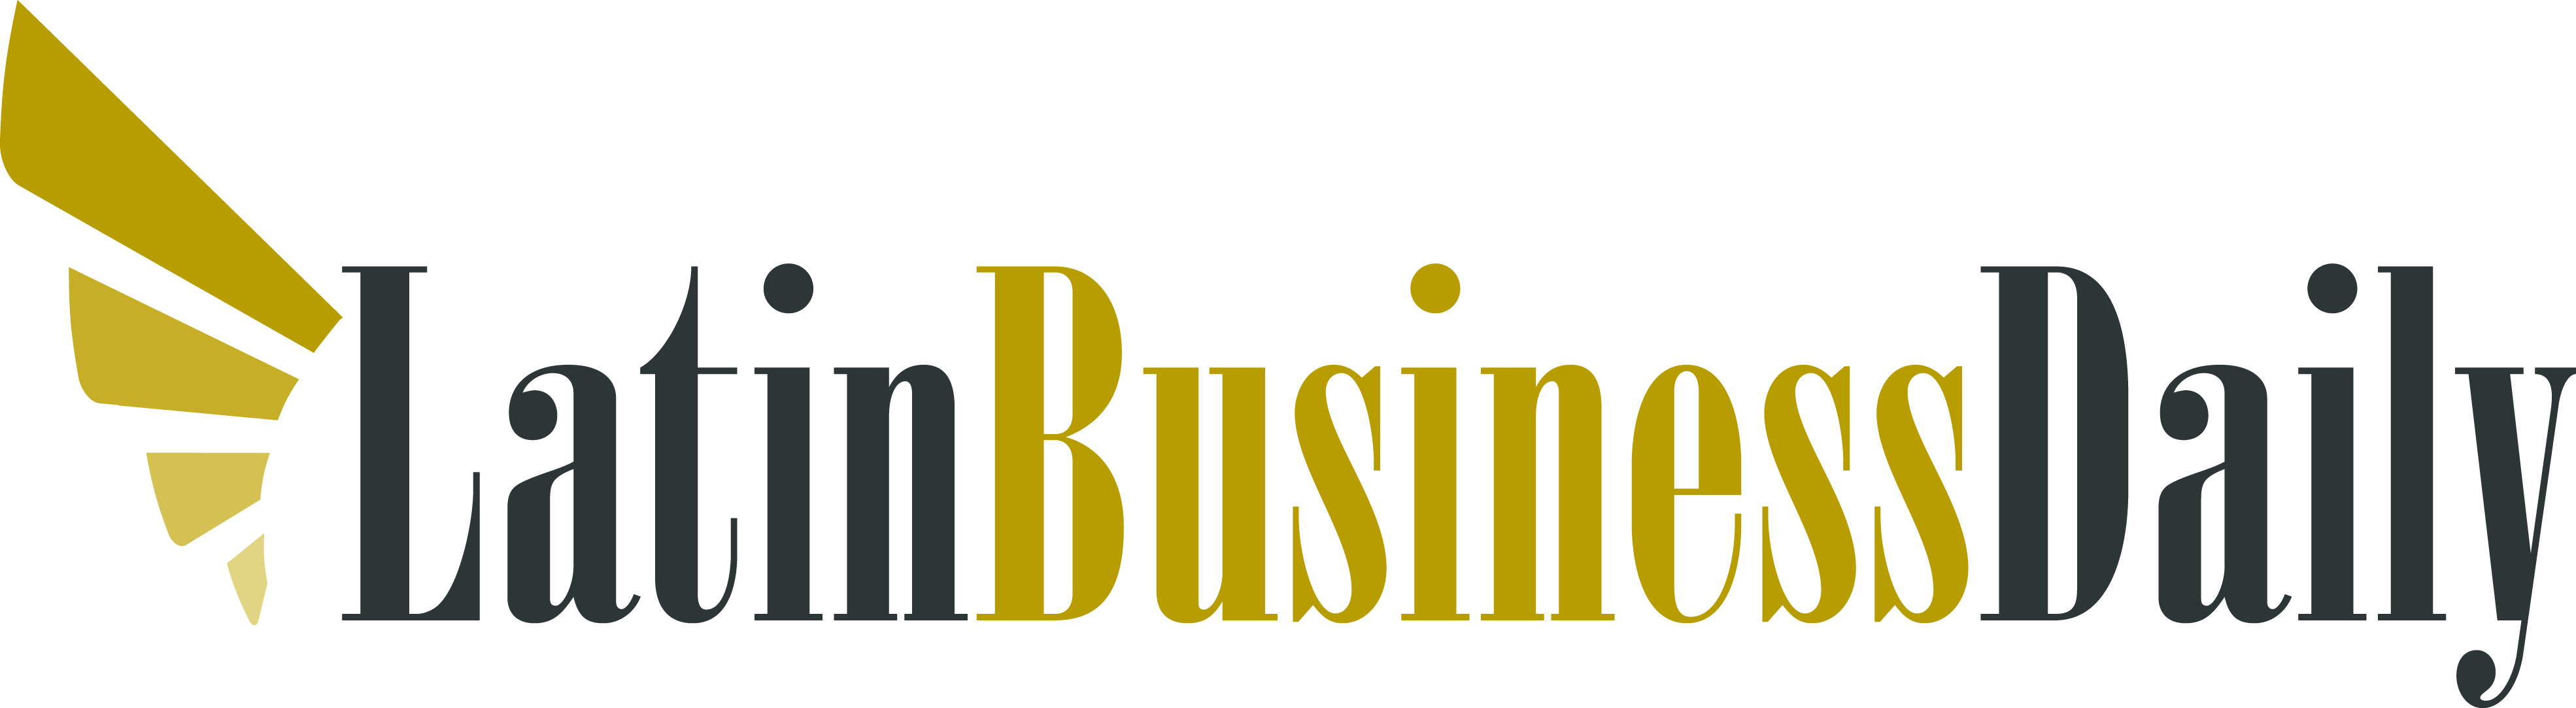 Latin Business Daily